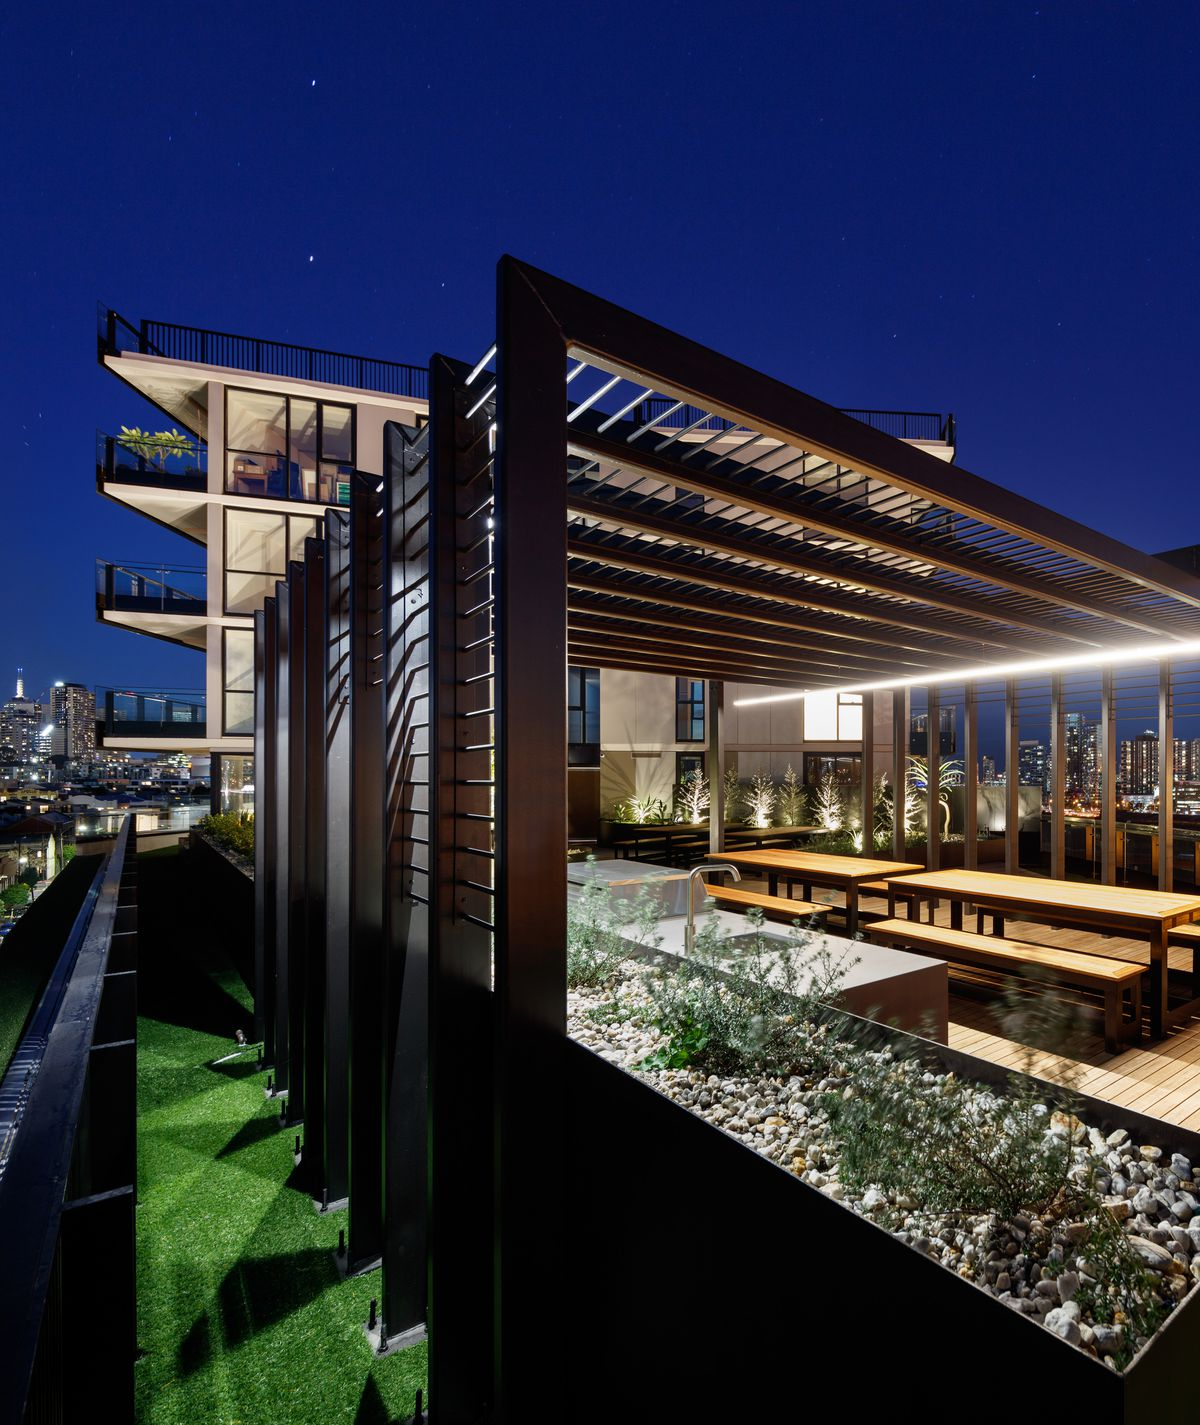 EXCEPTIONALLY FINISHED APARTMENTS